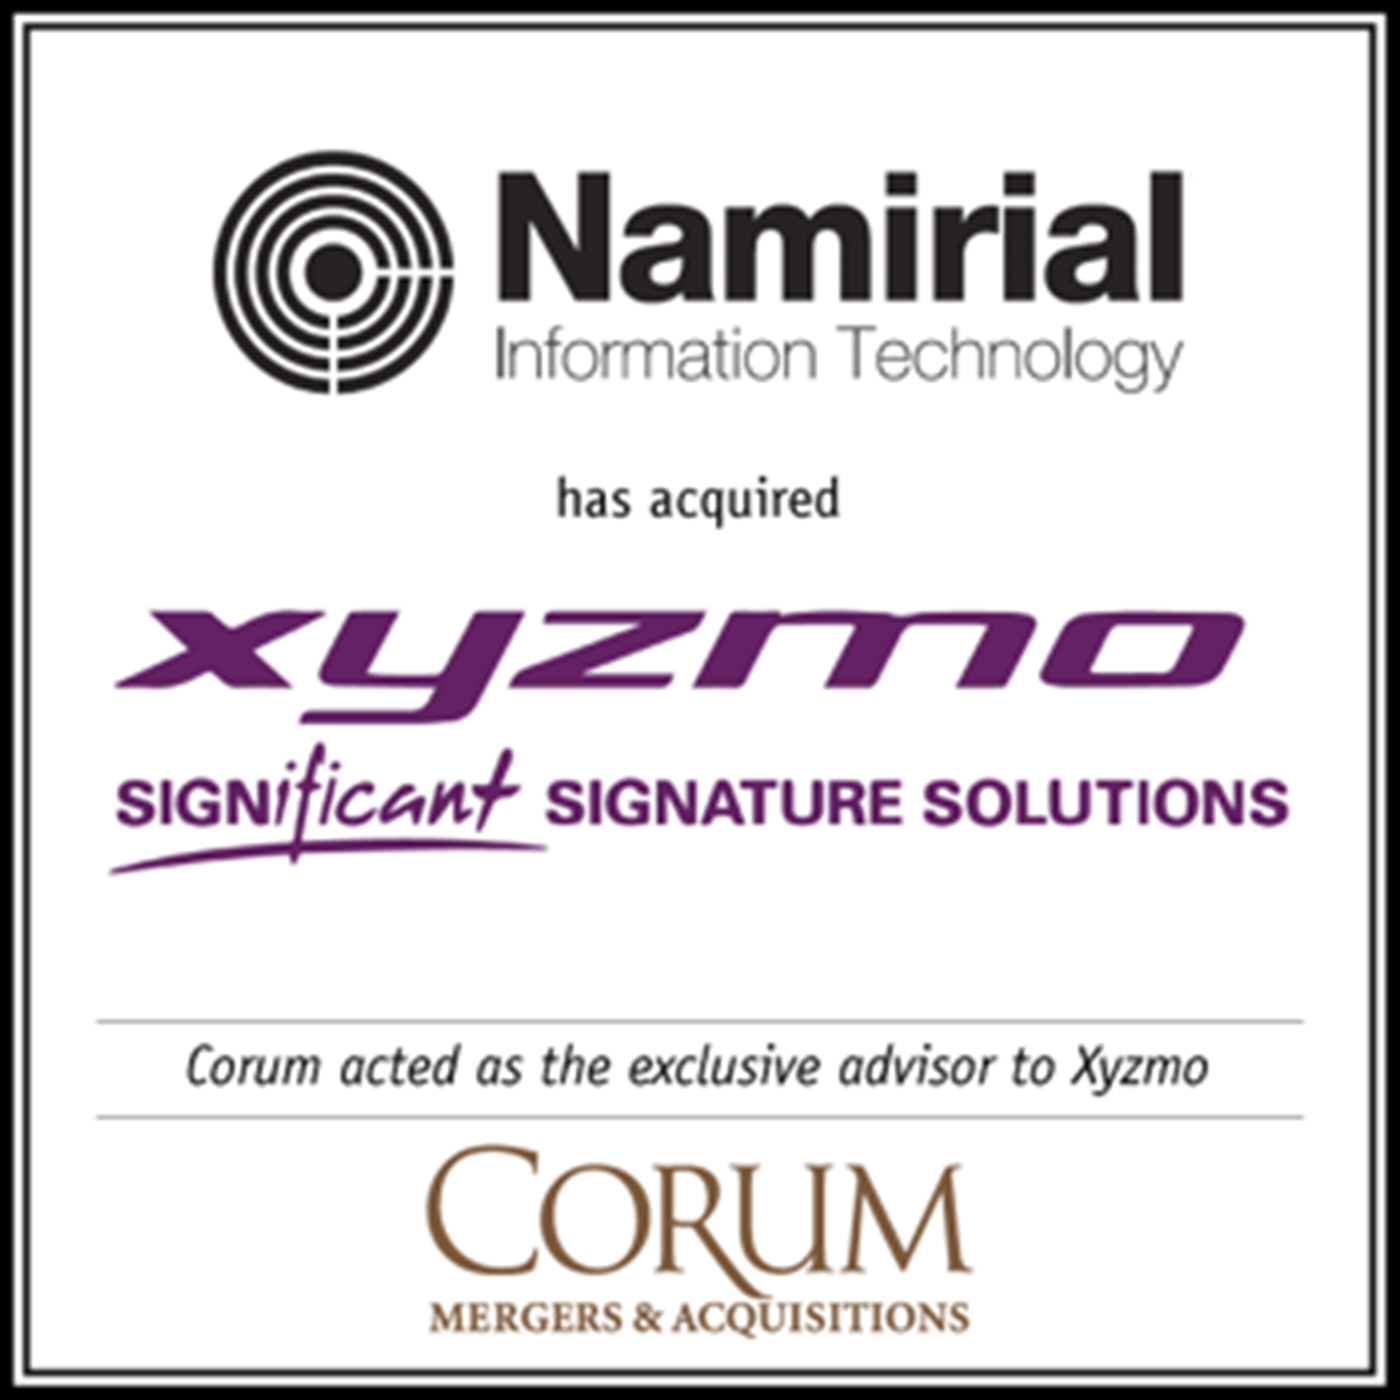 Tech M&A Annual Report - Field Report: SIGNificant Software (Xyzmo) acquired by Namirial